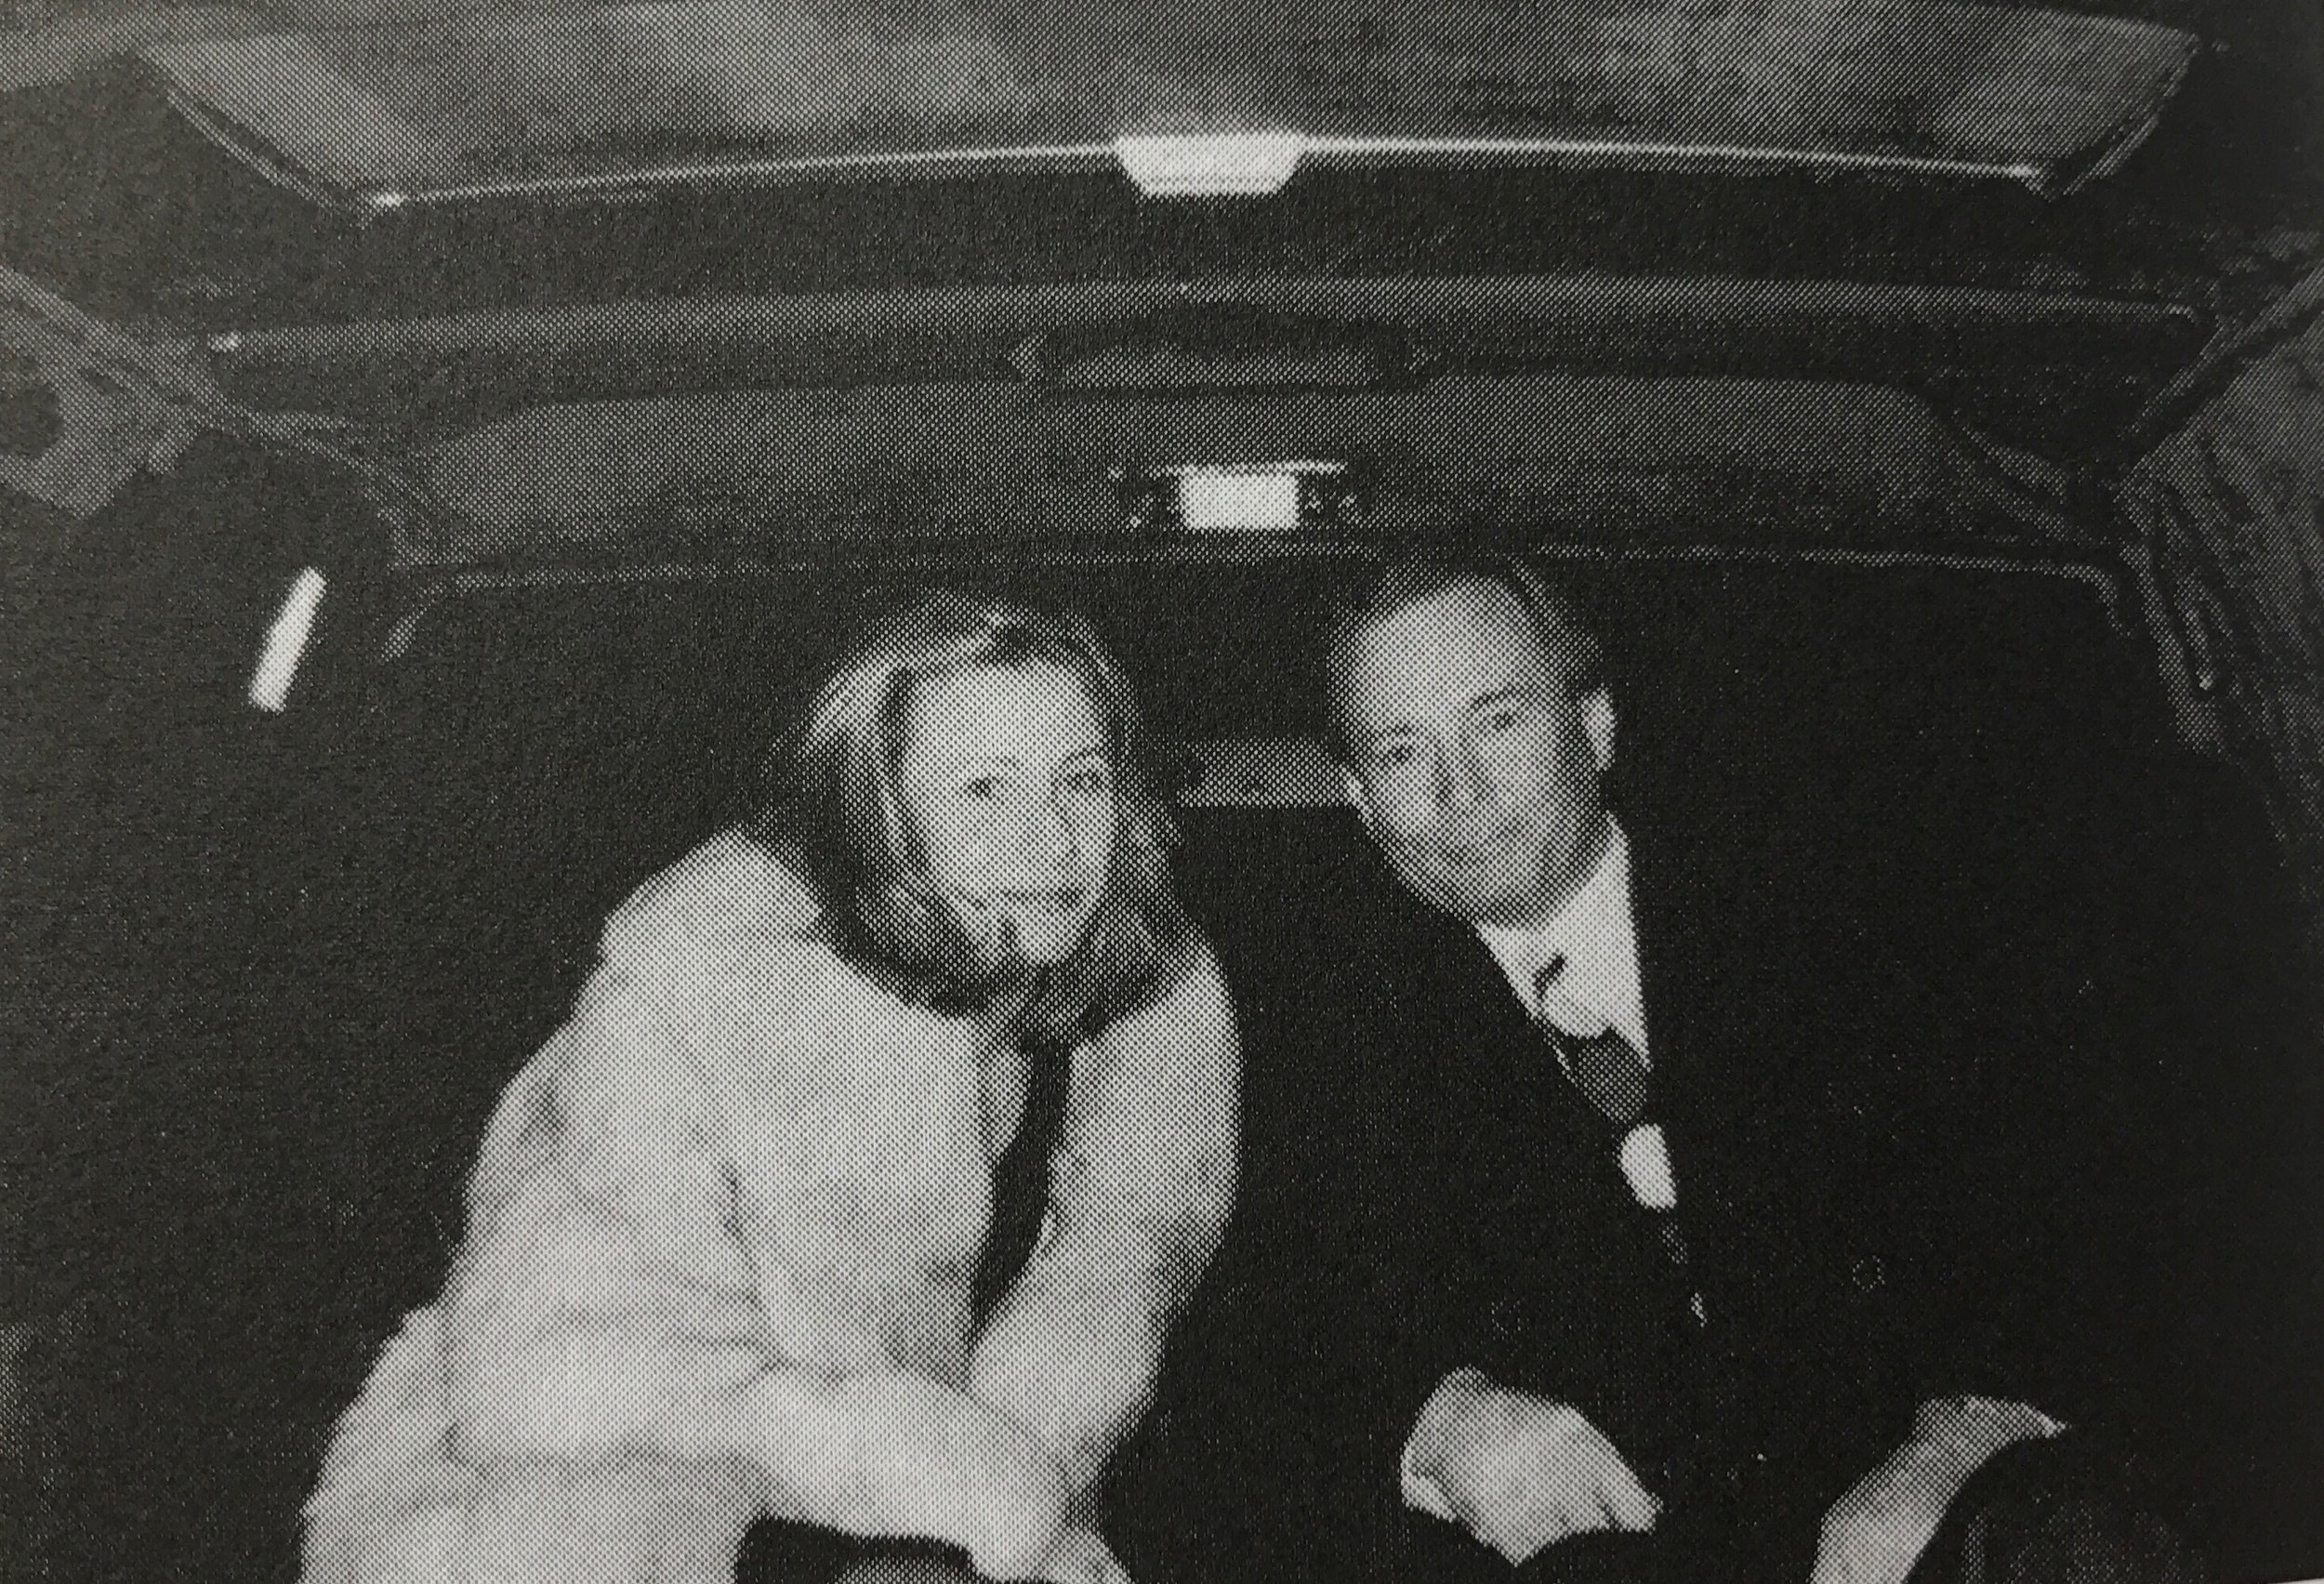 """Nicole and Gerard Ouimette in a limousine on their way to a father-daughter dance at Nicole's high school. In his memoir, Gerard wrote that when they arrived, they got out as if they """"were stepping onto the red carpet at the Academy Awards, and I escorted her in as if she was a movie star."""" Courtesy of Gerard Ouimette."""